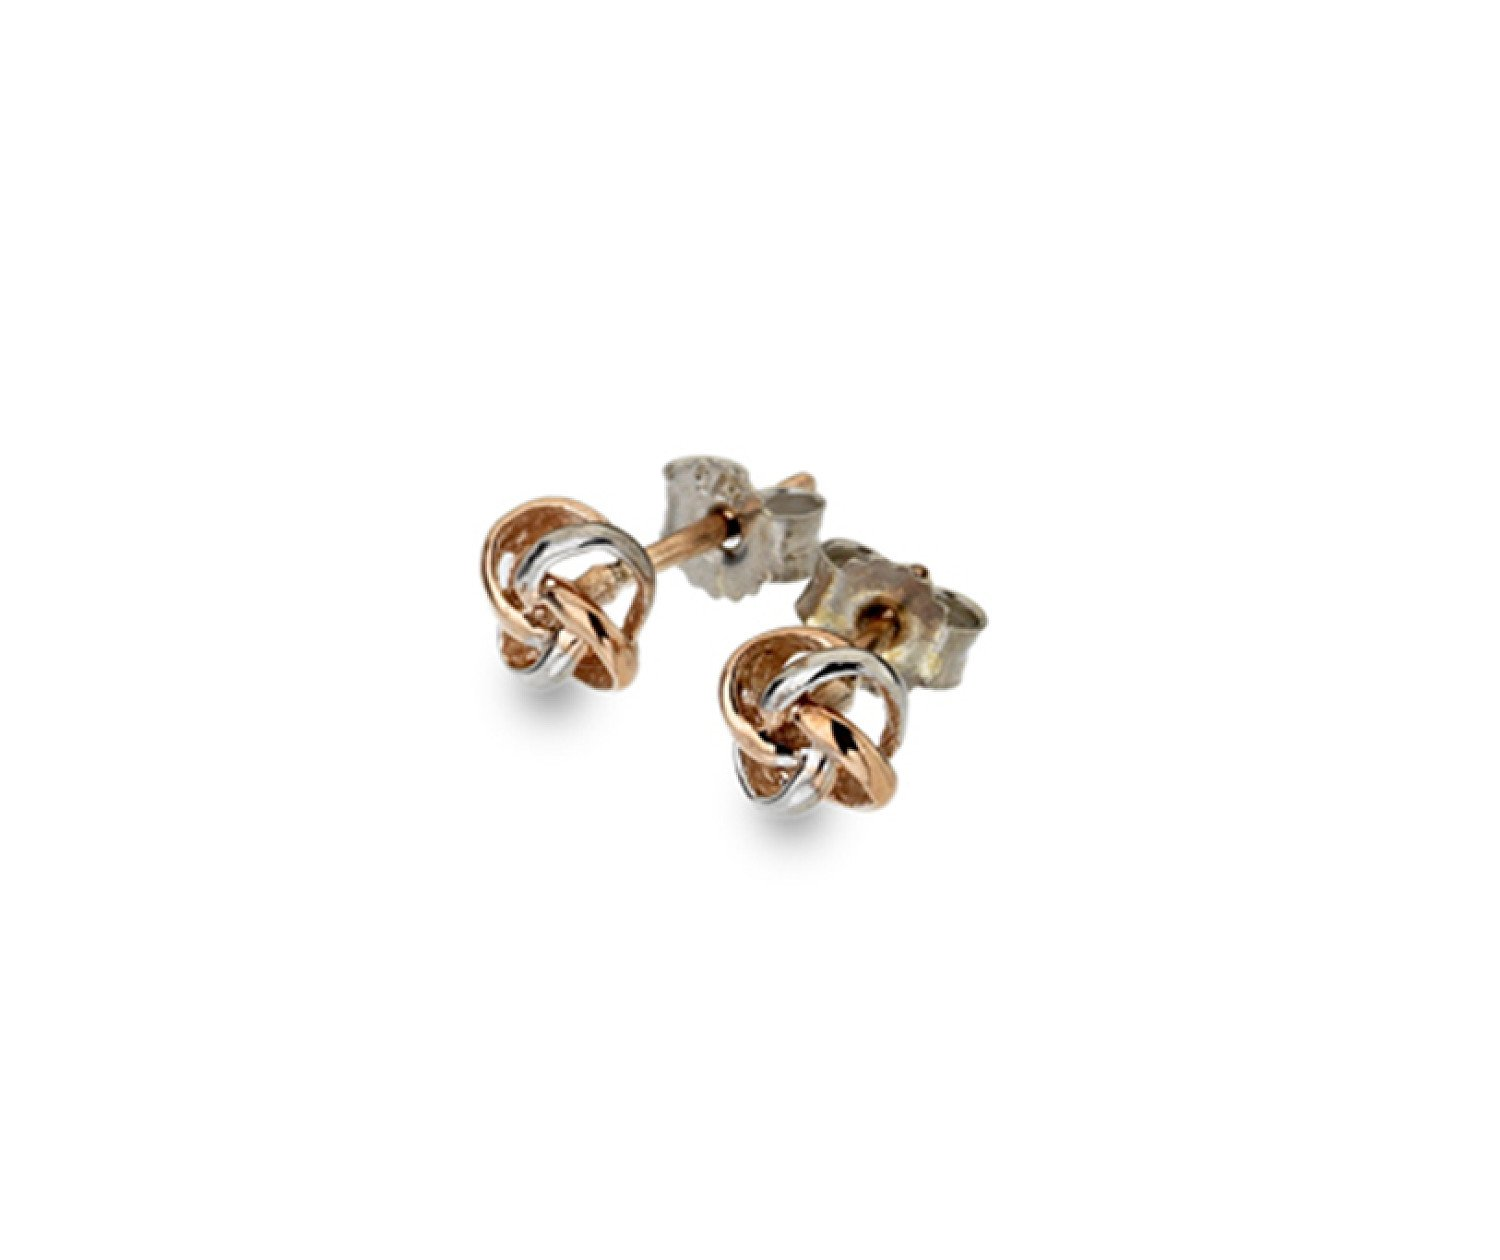 9ct rose & white gold, 3D knot stud earrings from Callibeau Jewellery only £55